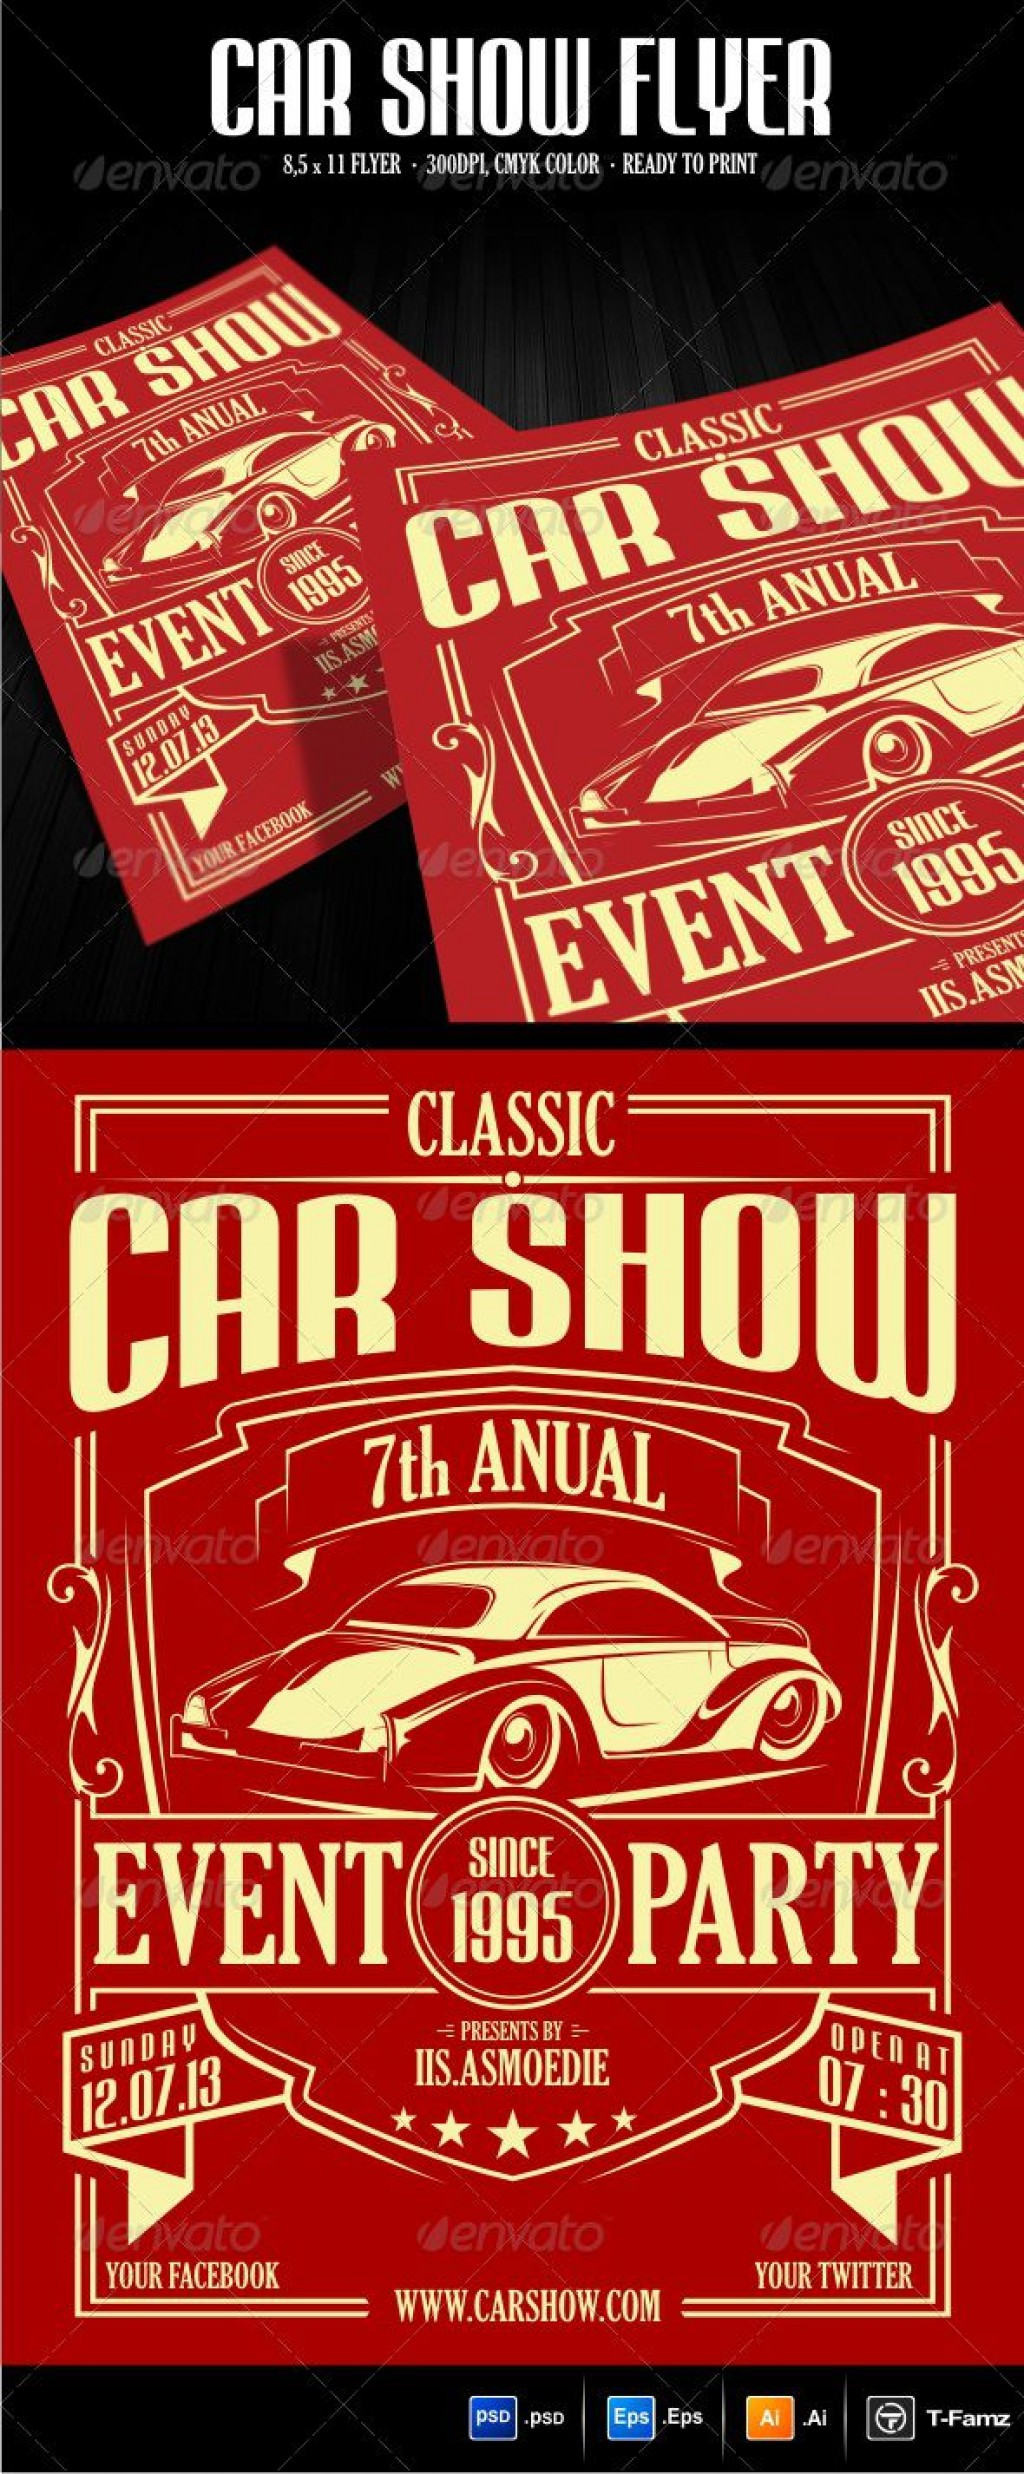 001 Unique Free Car Show Flyer Template Sample  Psd And BikeLarge